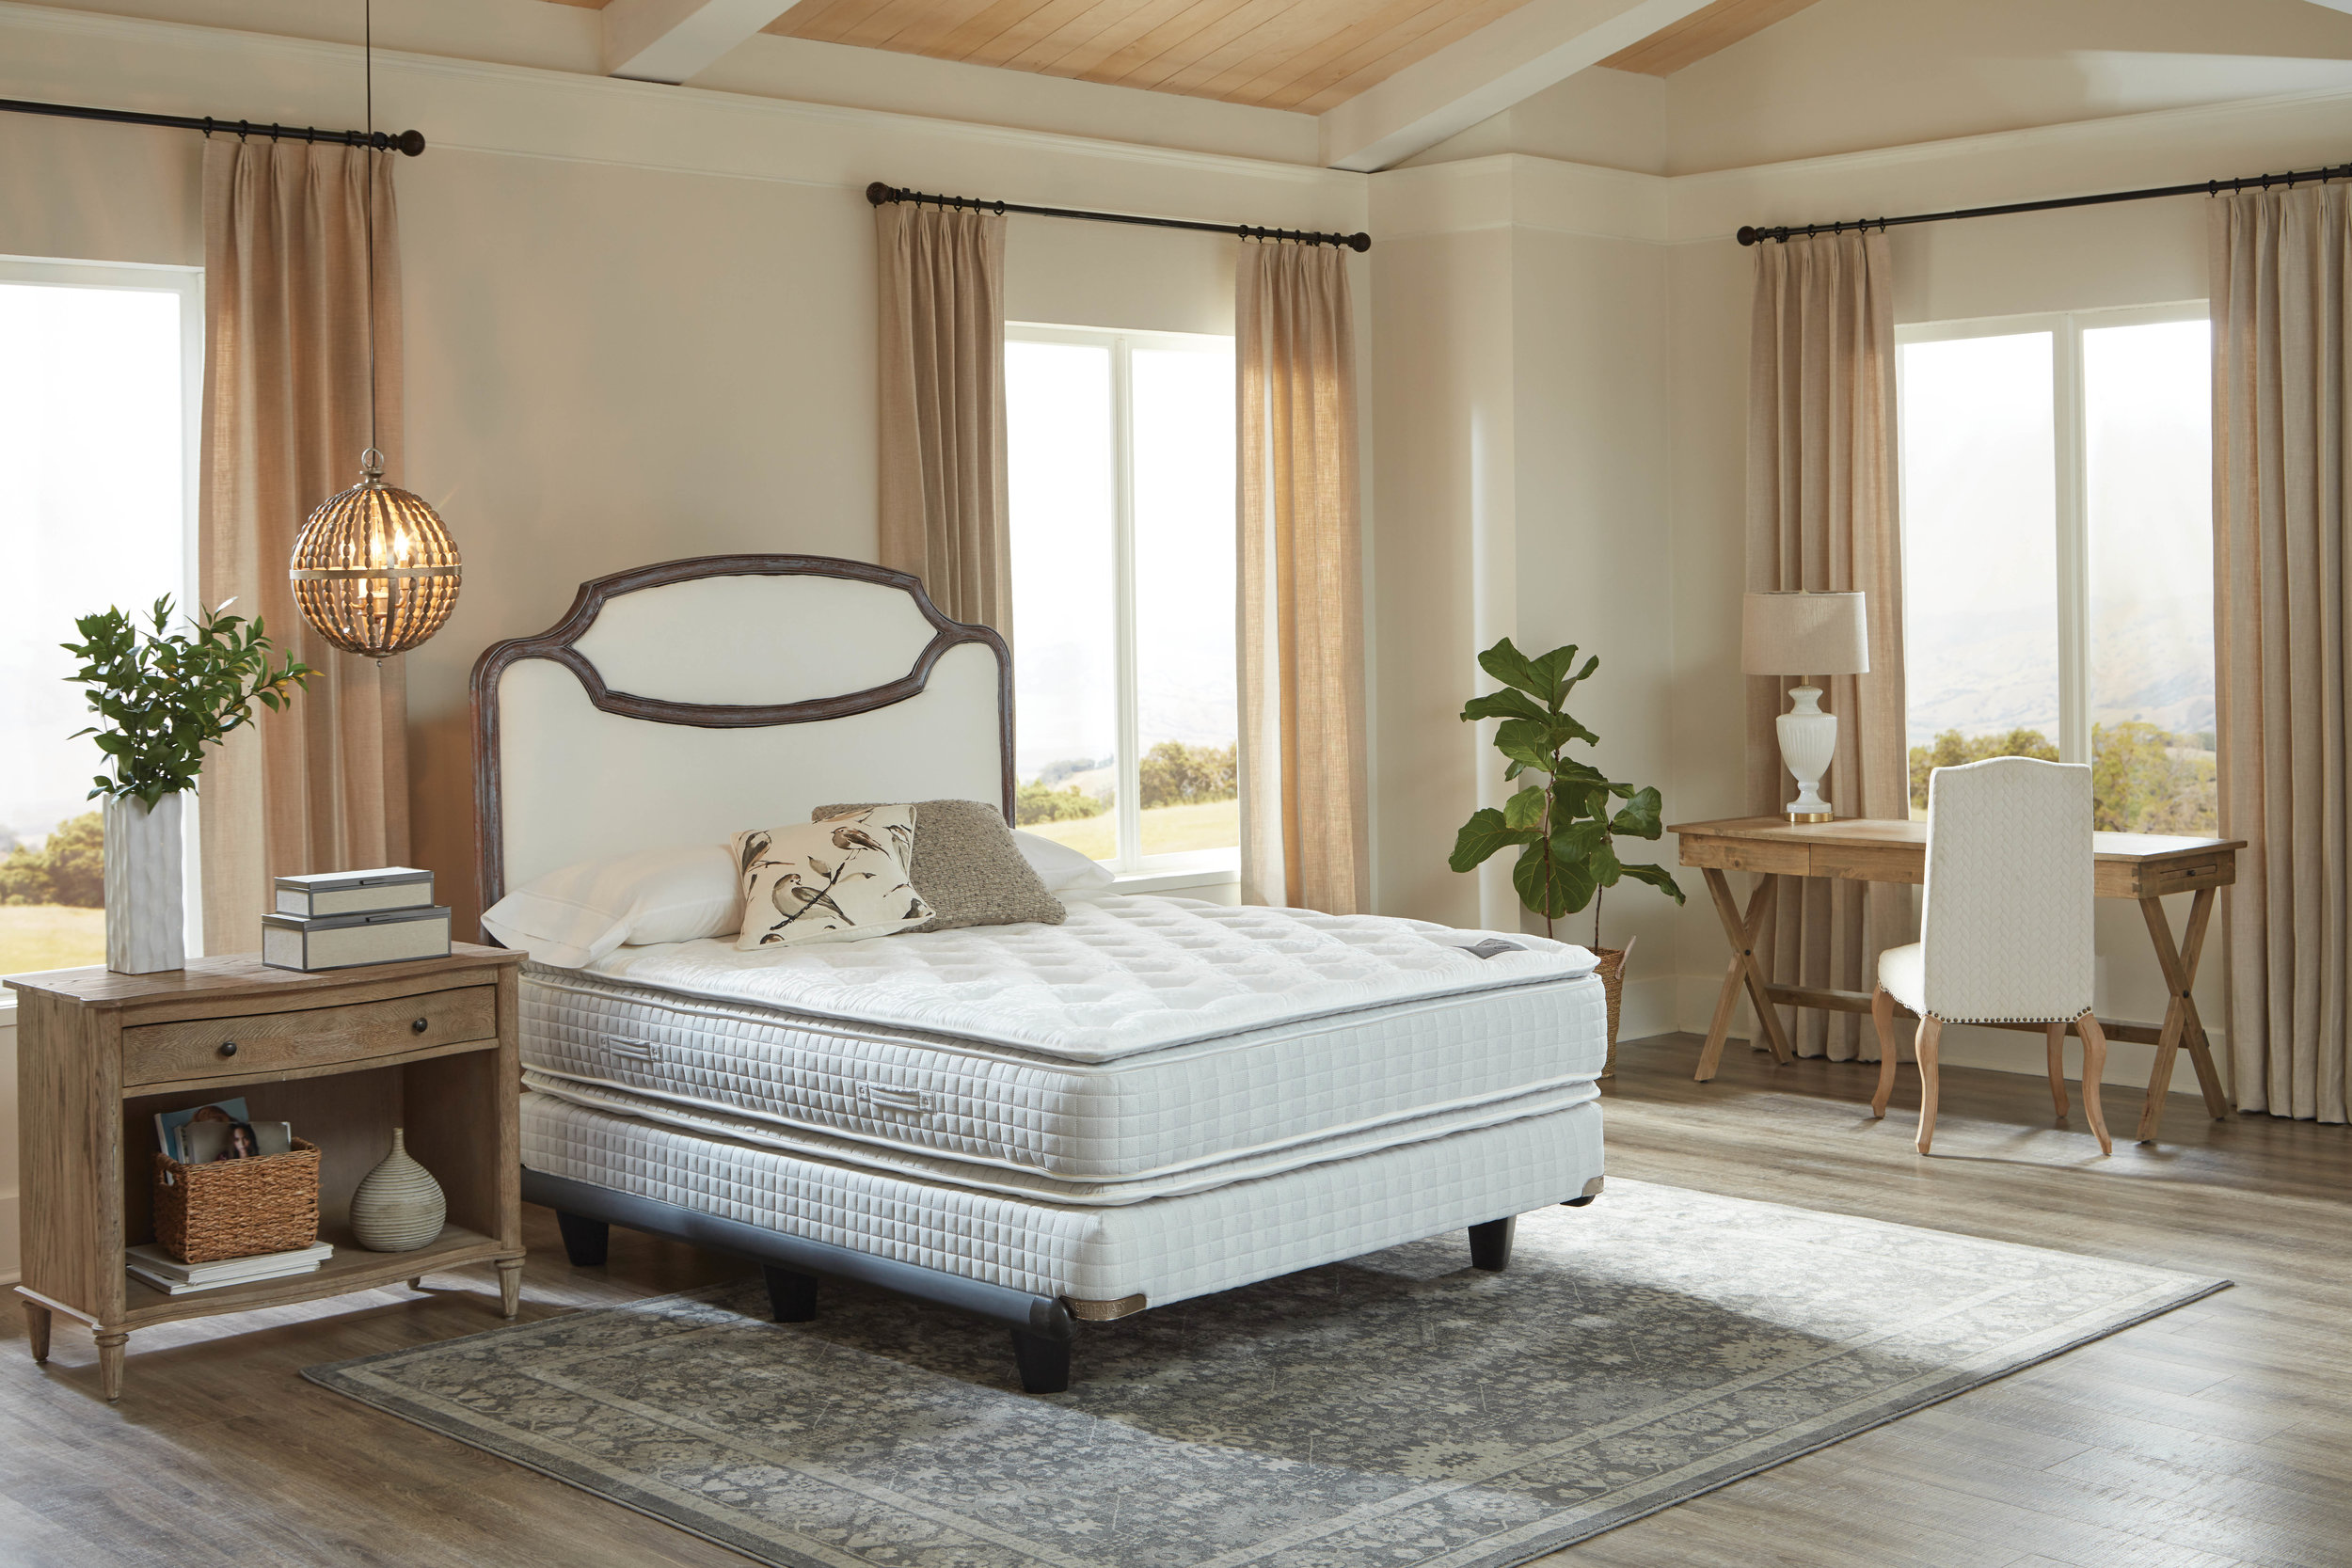 Shifman - Integrity, true craftsmanship, dedication to perfection — these are just a few of the ingredients Shifman puts into each luxury mattress to contribute to Shifman's quality, comfort, and durability.